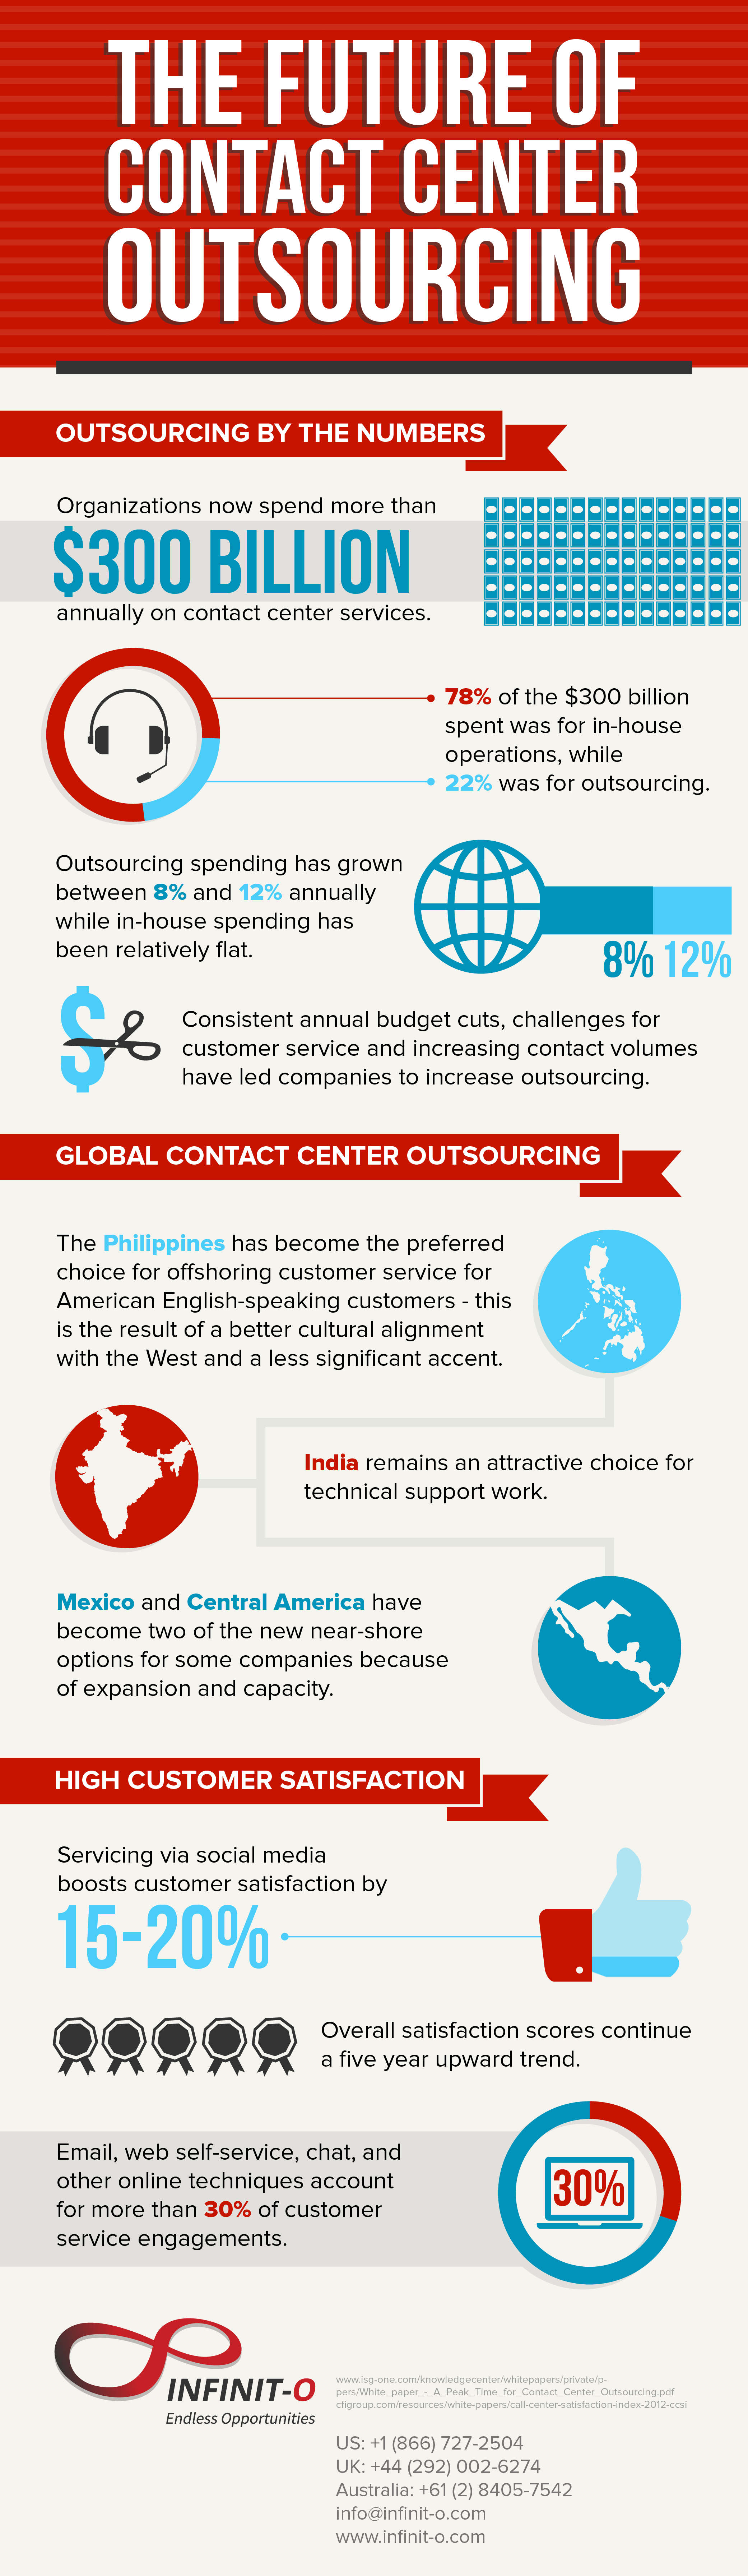 The future of contact center outsourcing